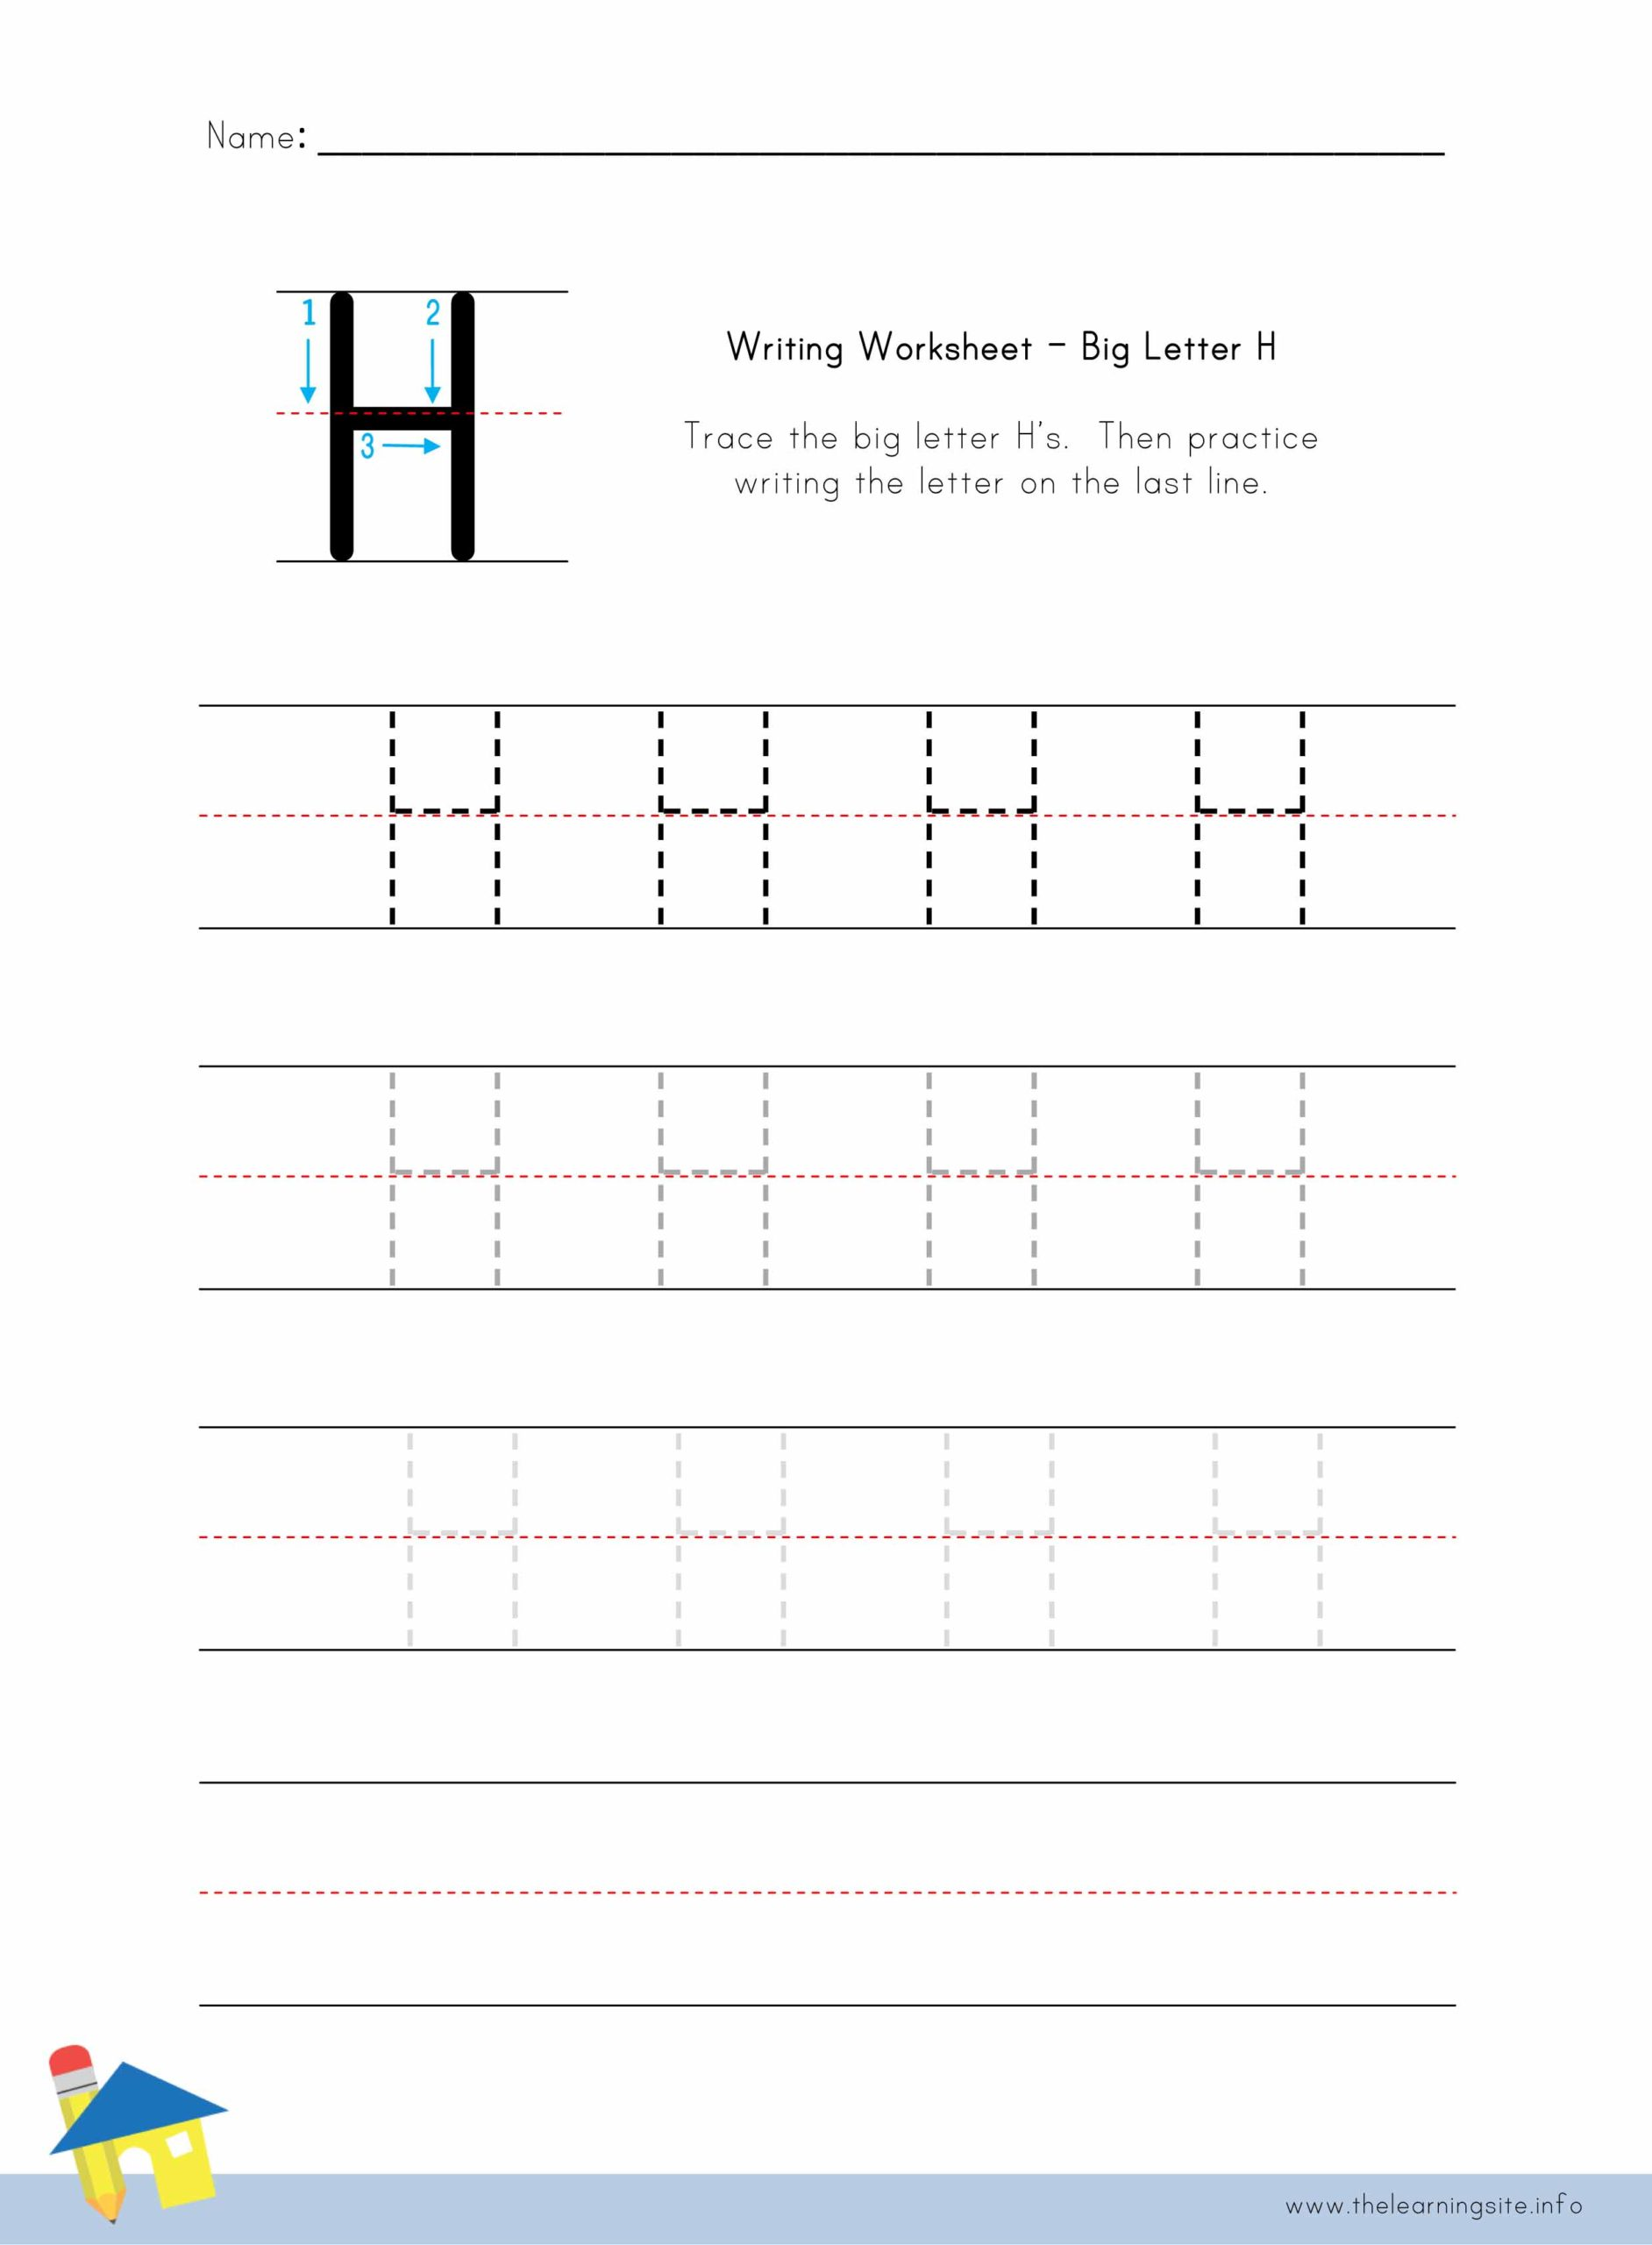 Big Letter H Writing Worksheet The Learning Site